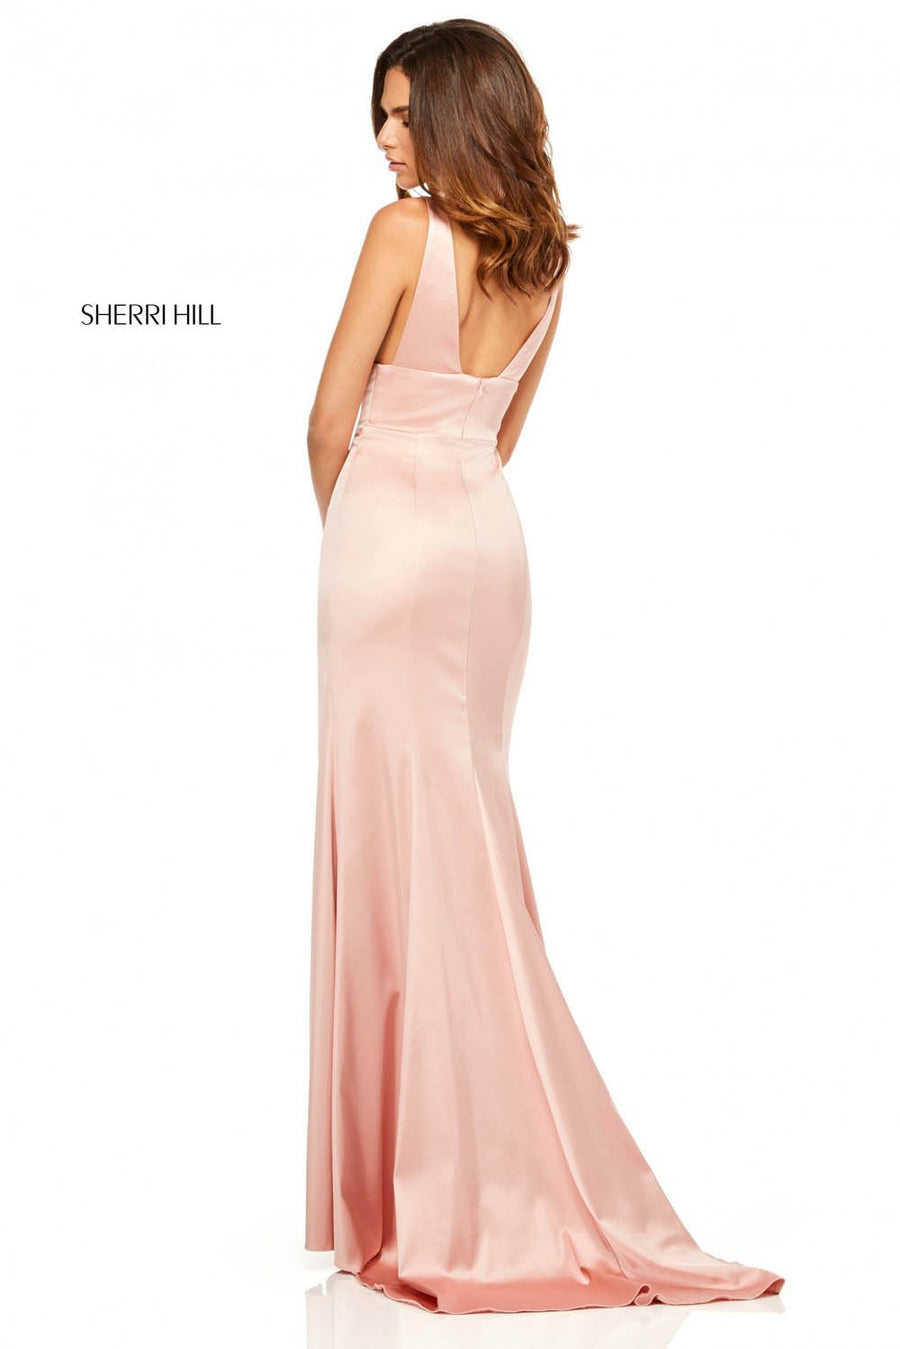 Sherri Hill 52549 prom dress images.  Sherri Hill 52549 is available in these colors: Emerald, Navy, Blush, Teal, Mocha, Royal, Ruby, Red, Black.